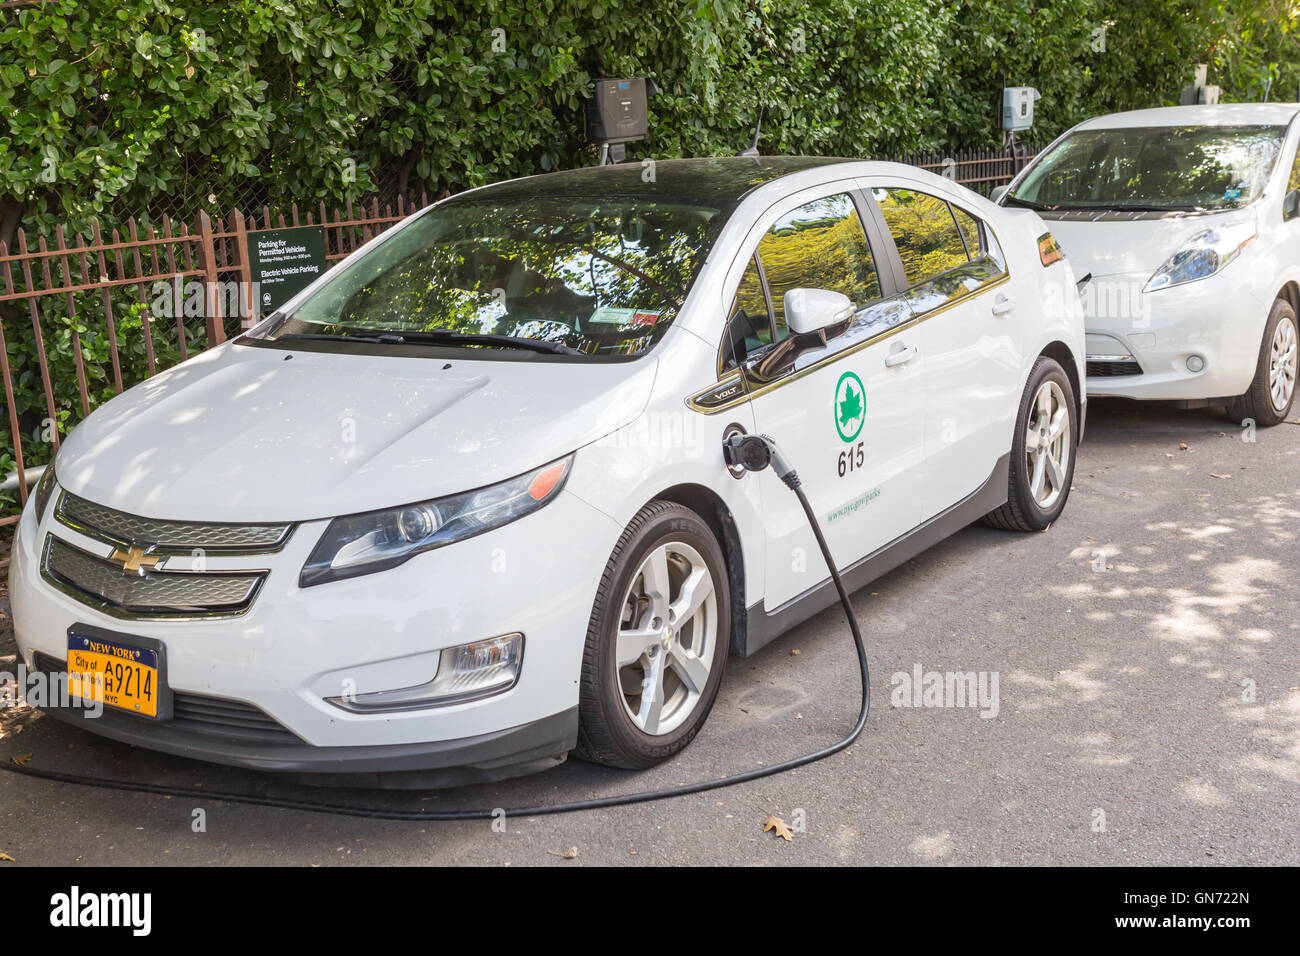 A New York City Parks department Chevy Volt electric car receives a charge at a charging station in Central Park. Stock Photo